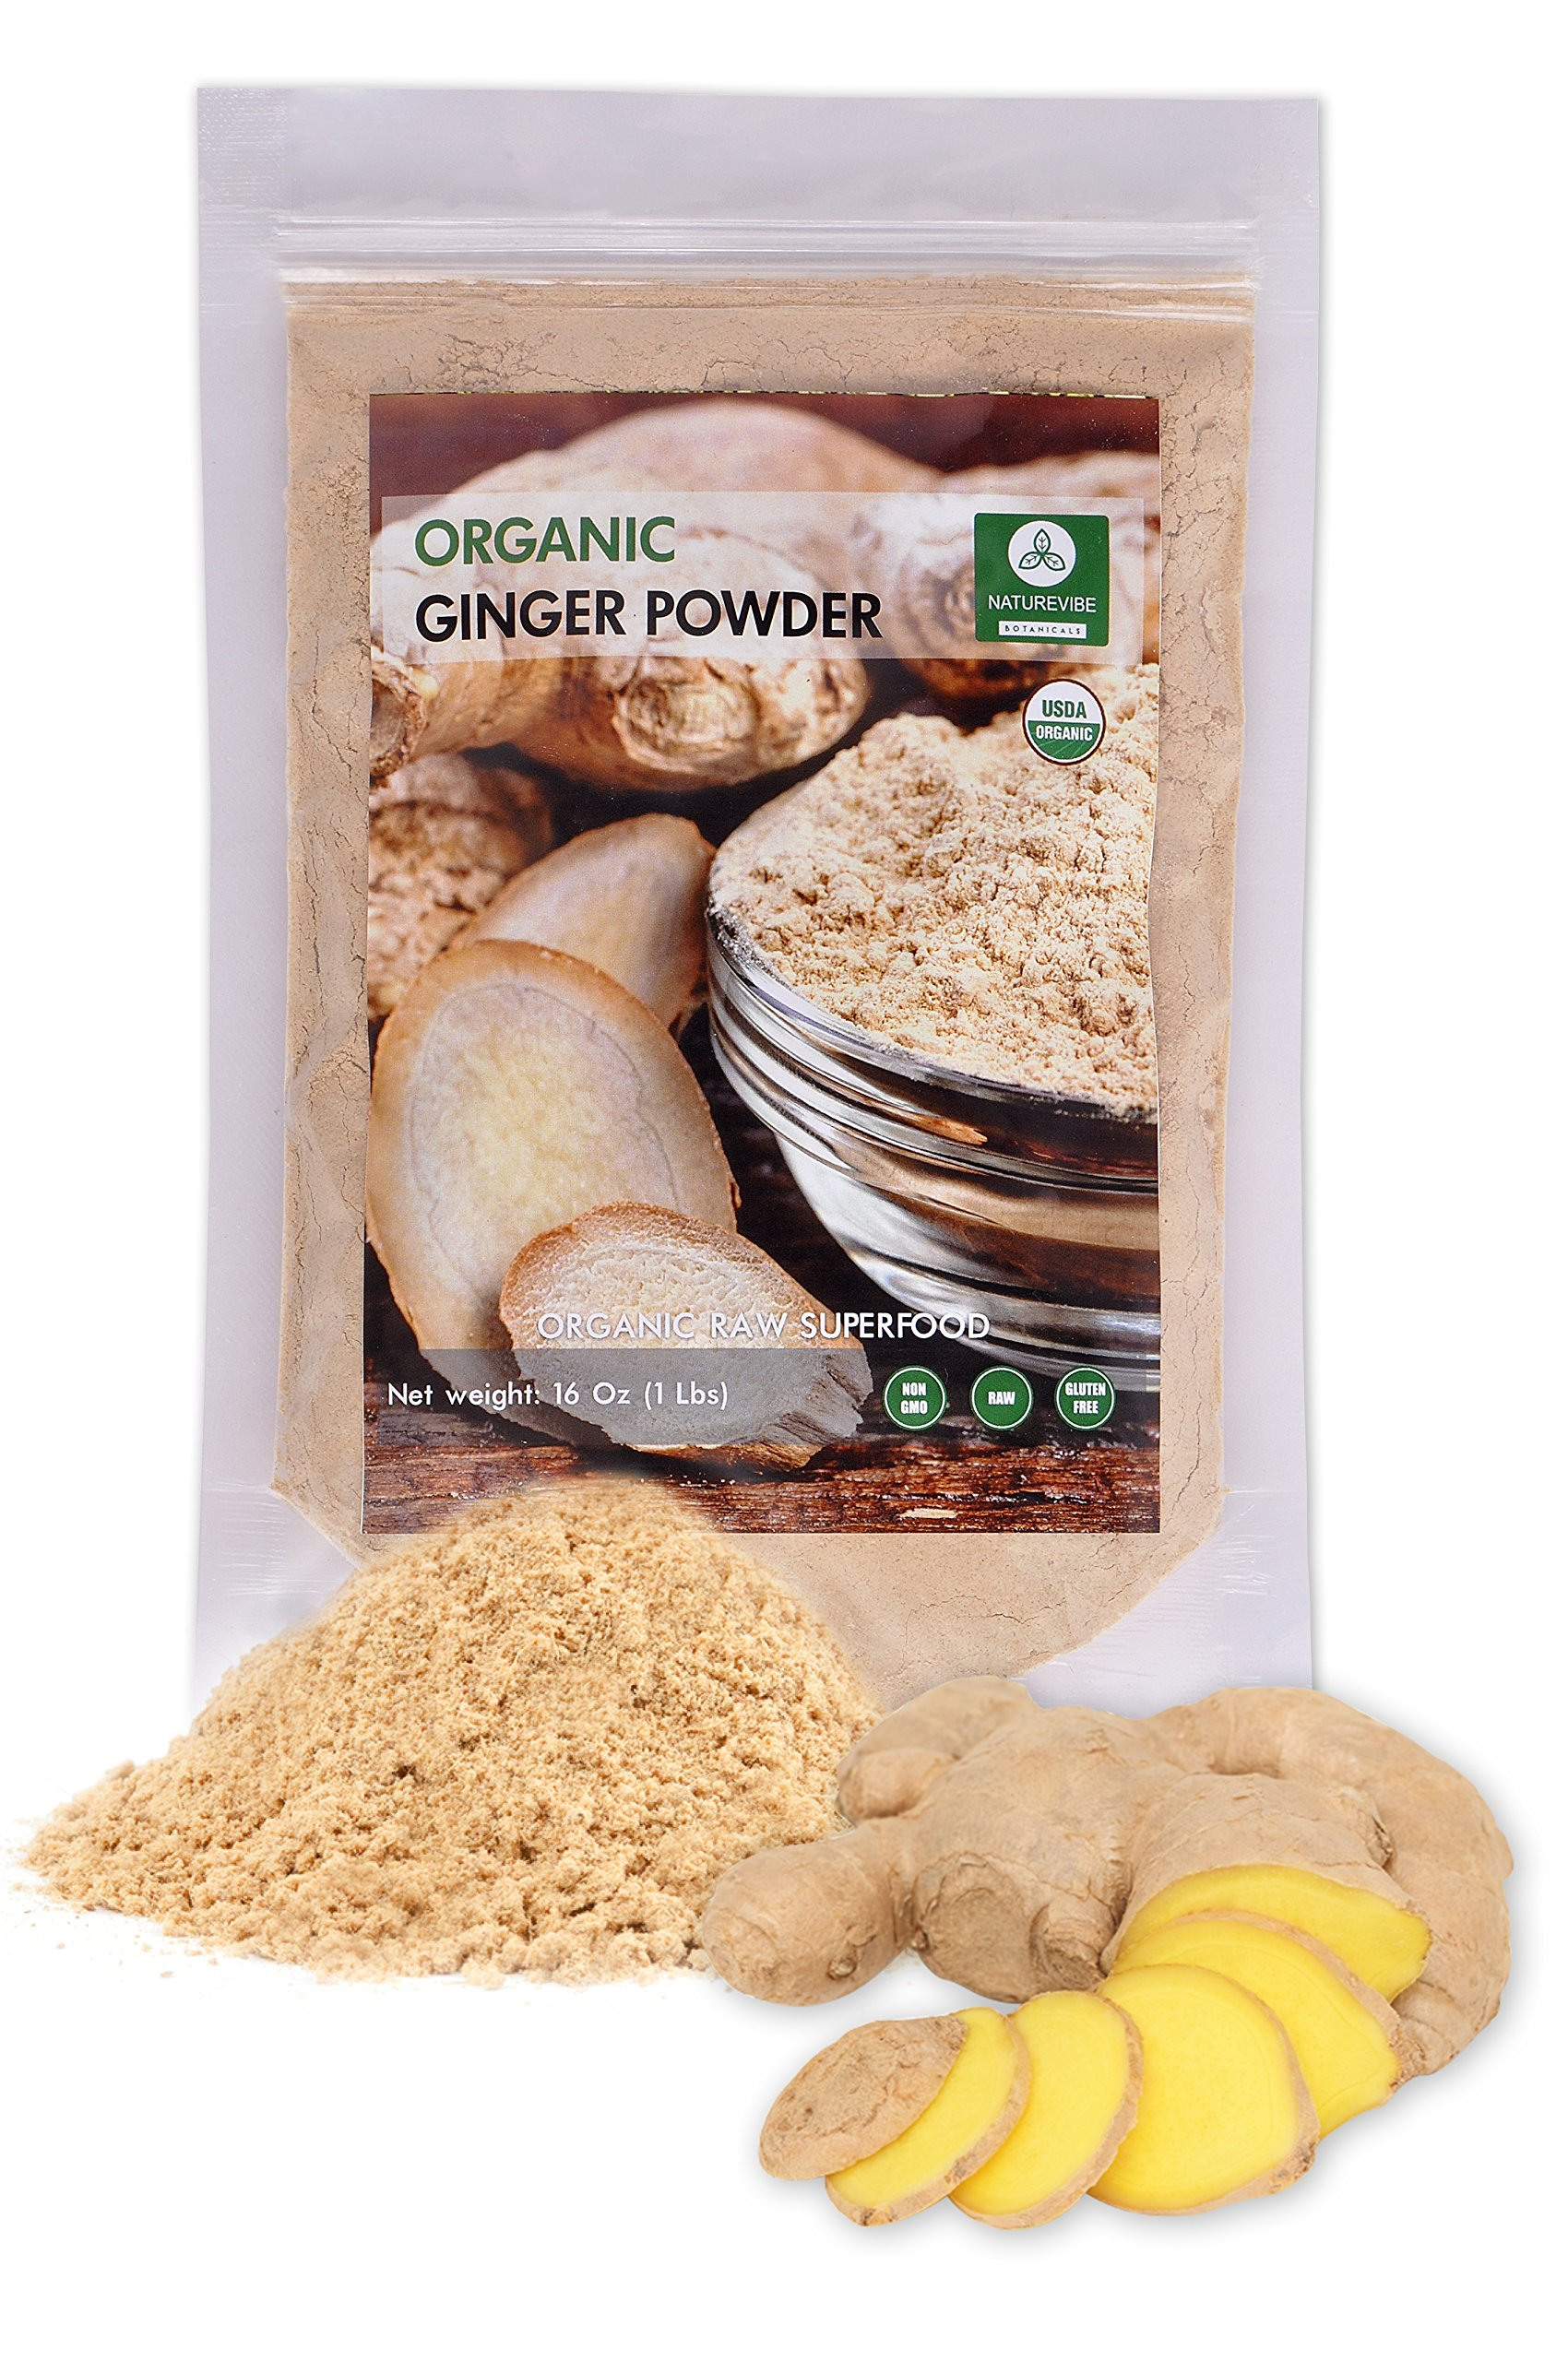 Organic Ginger Ground or Powder (1lb) by Naturevibe Botanicals, Gluten-Free, Raw & Non-GMO (16 ounces)